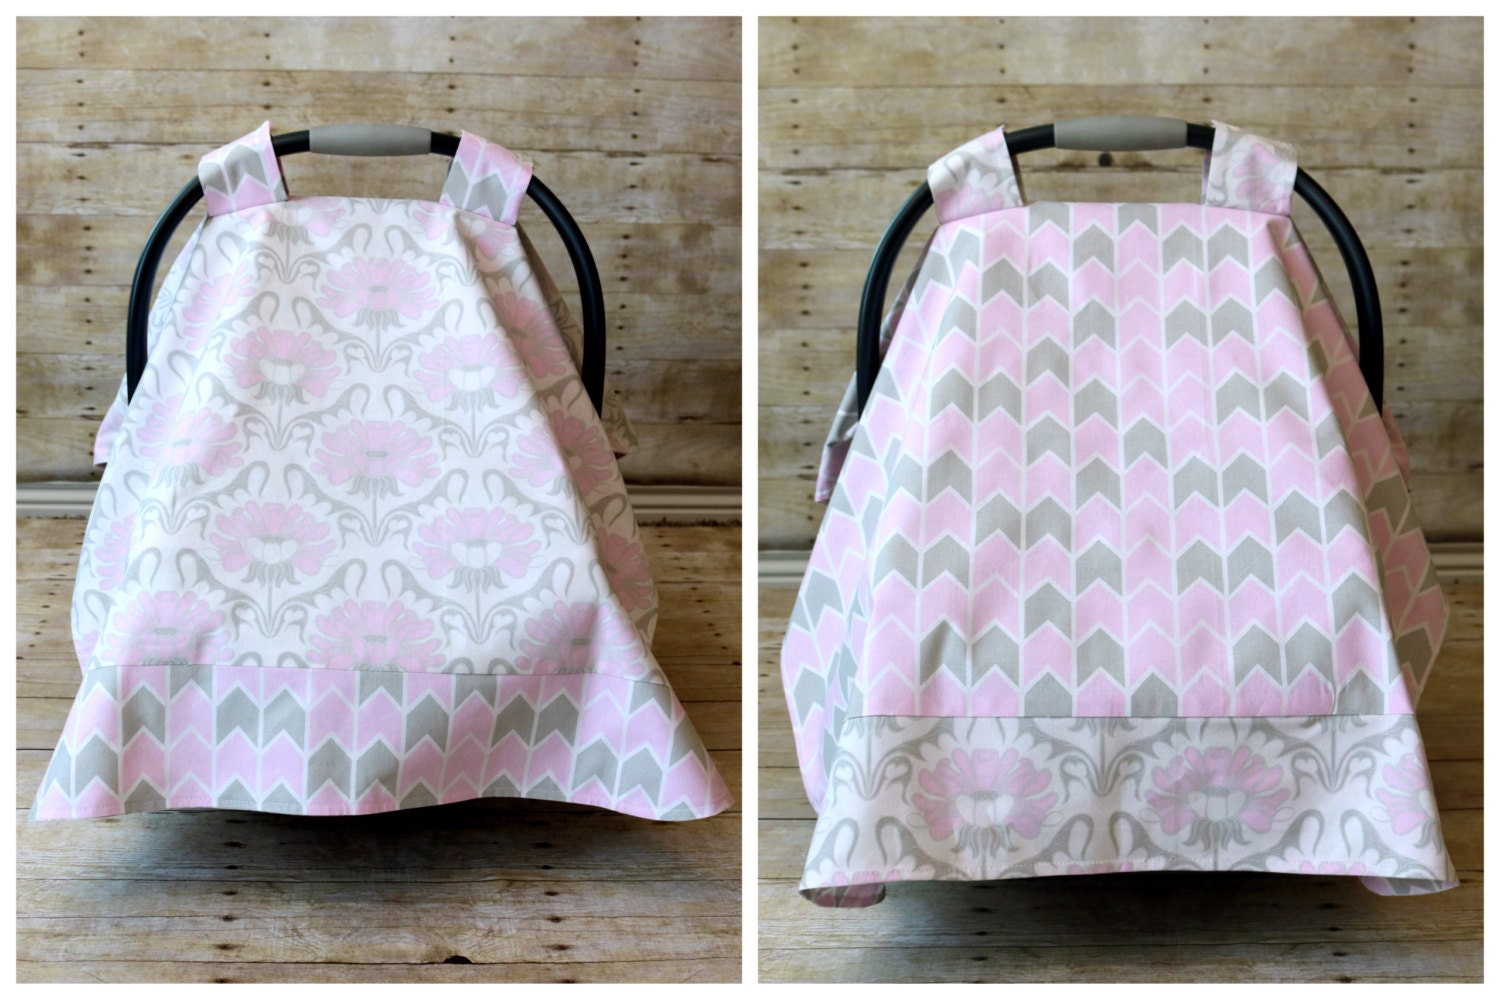 Reversible Car Seat Cover Canopy Pink Gray And White Floral